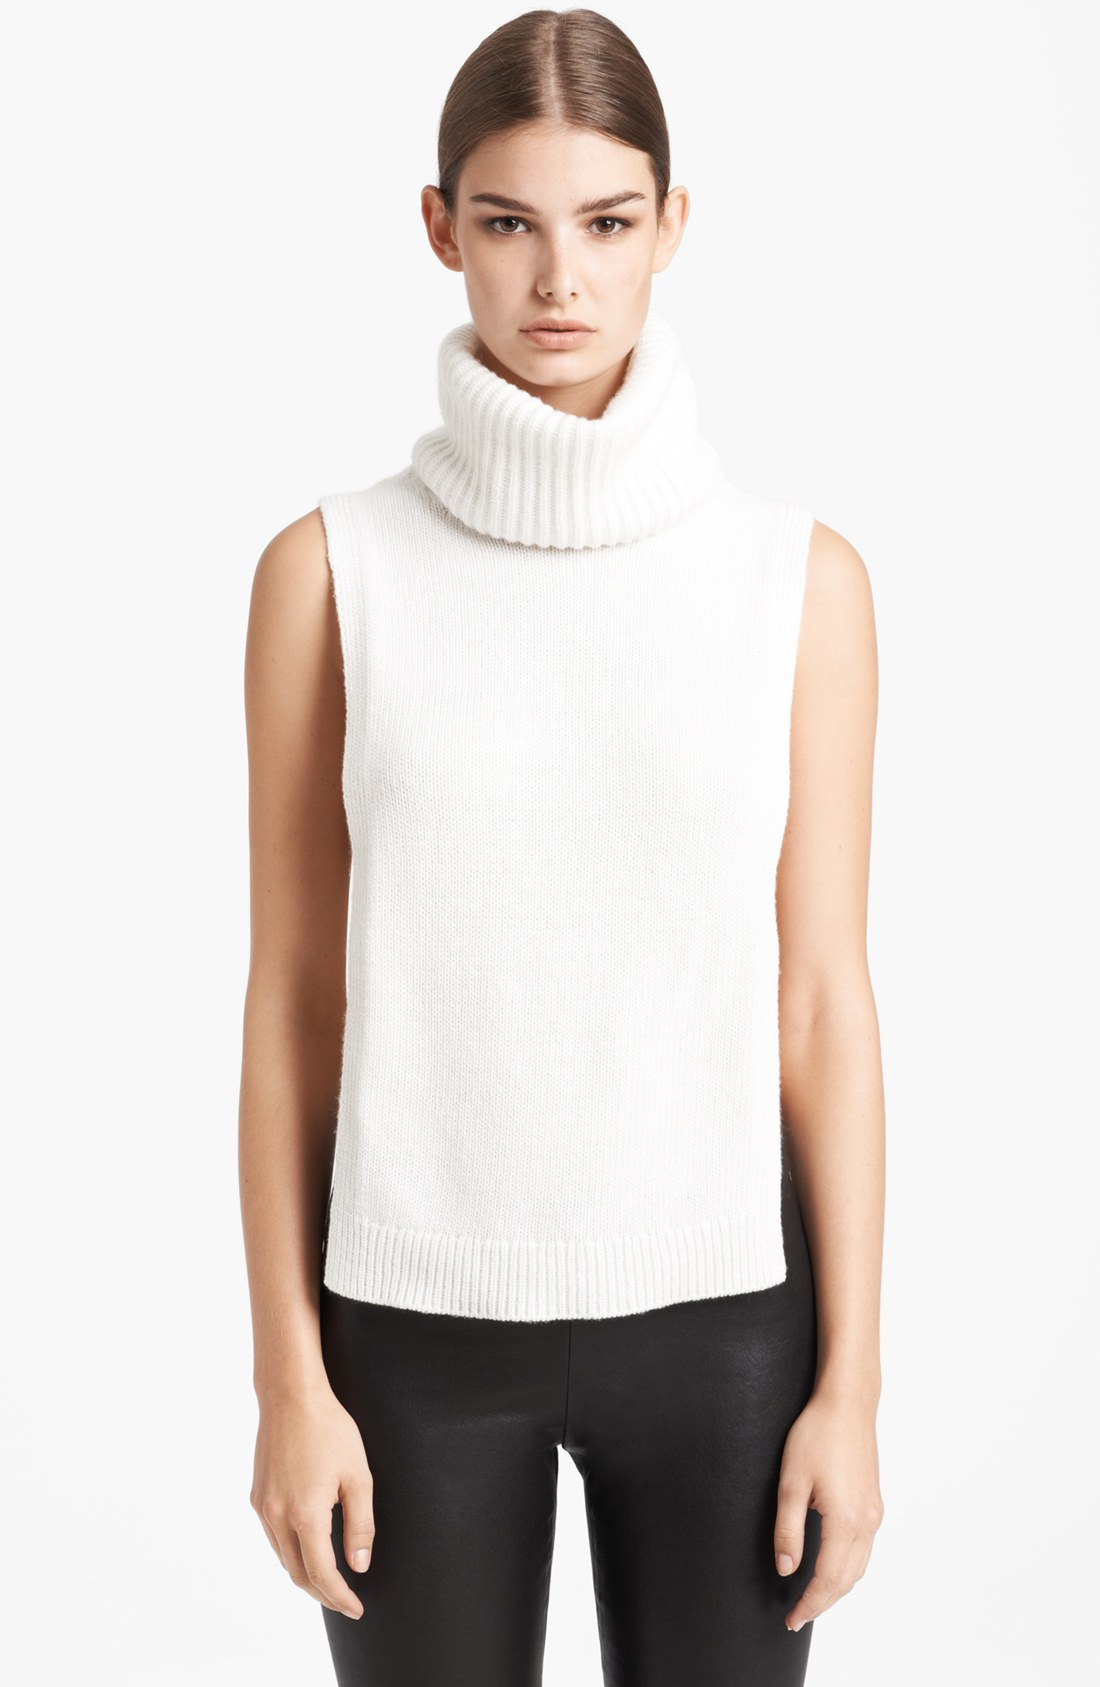 Women Sleeveless Mock-Turtleneck Pleated Top with Waistband. from $ 14 5 out of 5 stars 1. Loving People. Sleeveless Solid Plain Ruched Front Turtle Mock Neck Casual Tank Top. from $ 12 99 Prime. out of 5 stars SPANX. On Top and in Control - Chic Sleeveless Shaping Turtleneck. from $ 13 94 Prime.